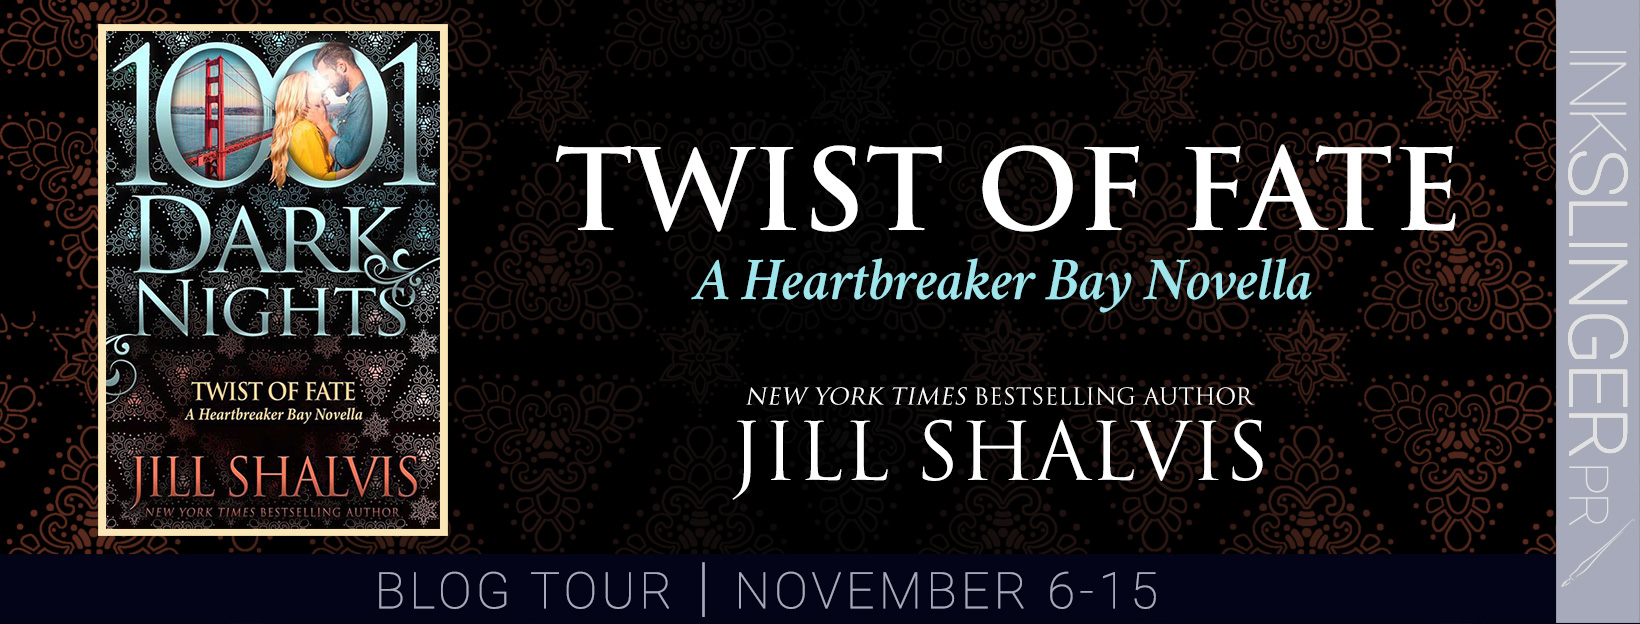 BOOK REVIEW: Twist of Fate (Heartbreaker Bay #8.5) by Jill Shalvis